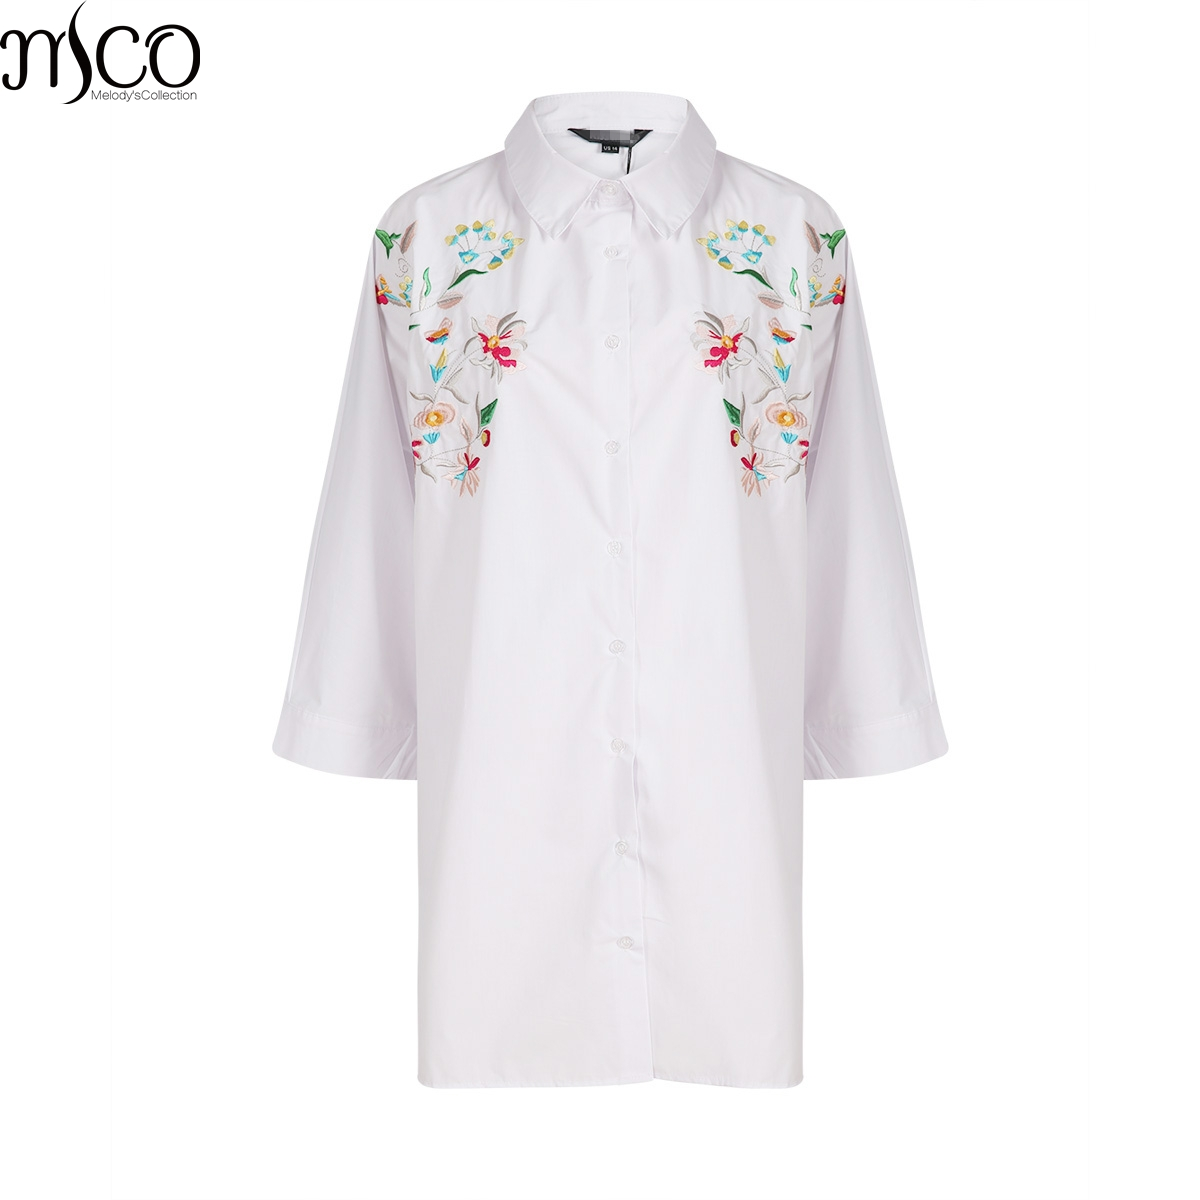 MCO Fashion Floral Emboridered Top Oversized Basic Plus Size Women Clothing Classic Big Kimono Shirt 5xl 6xl 7xl OL Long Blouse